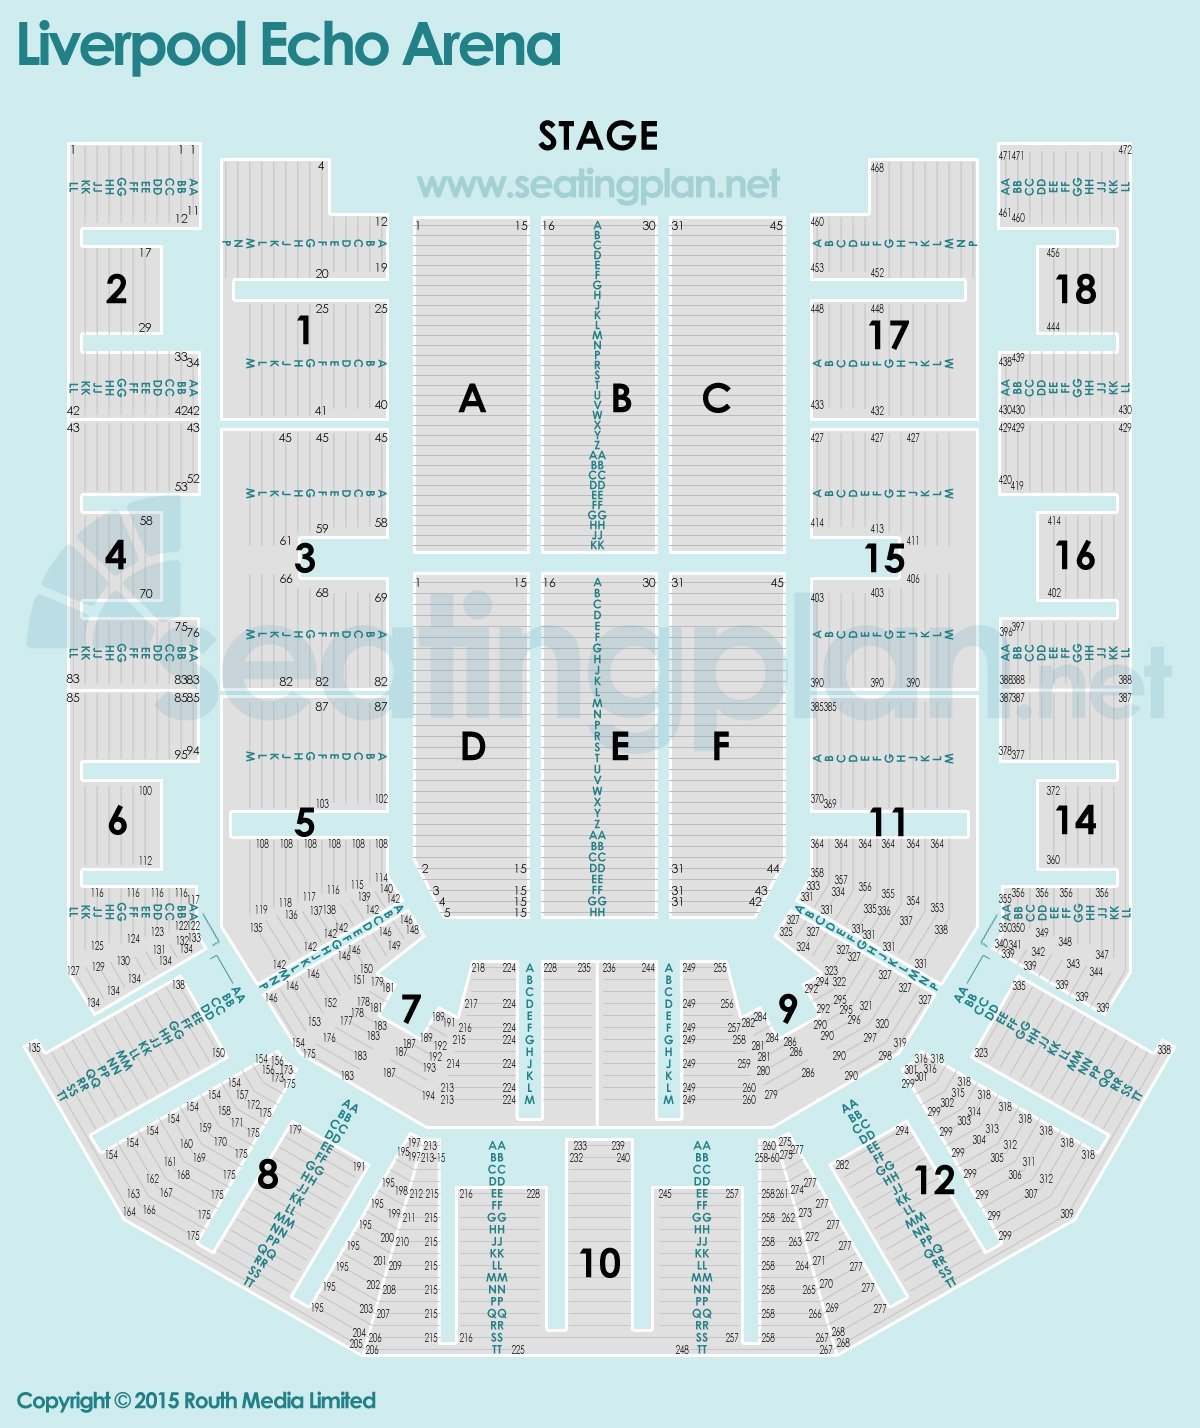 Allstate Arena Floor Plan: Allstate Arena Seating Chart With Seat Numbers